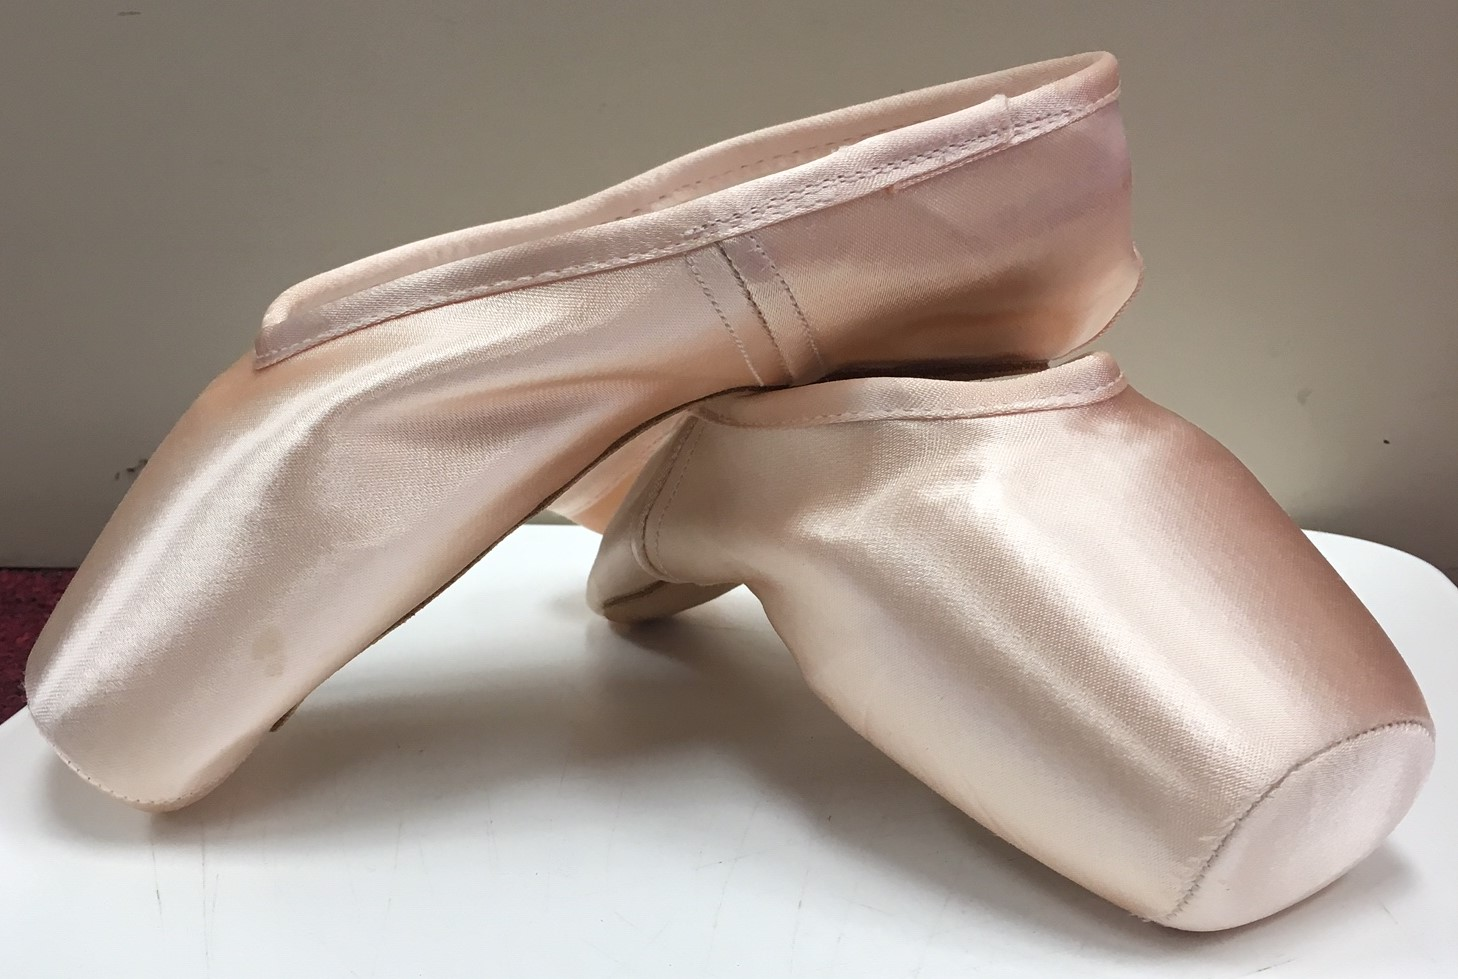 Gaynor Minden Pointe Shoes with Wide Box and Hard Shank. With Deep Vamp and High Heel